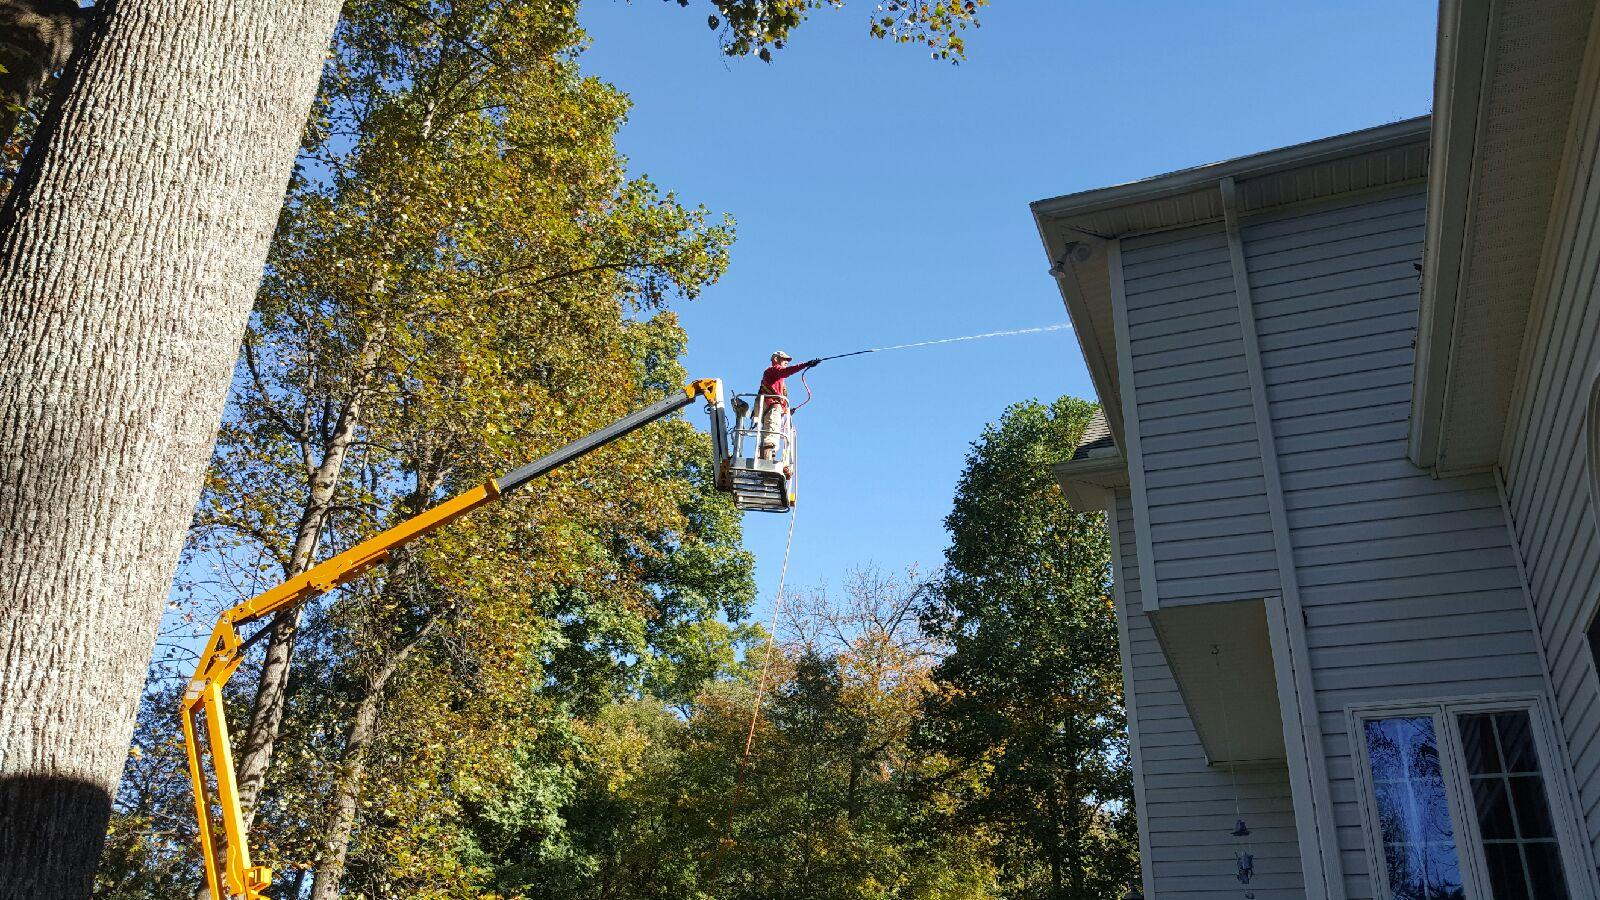 Boom Lift | Soft Wash Roof Contractor in Fayetteville PA